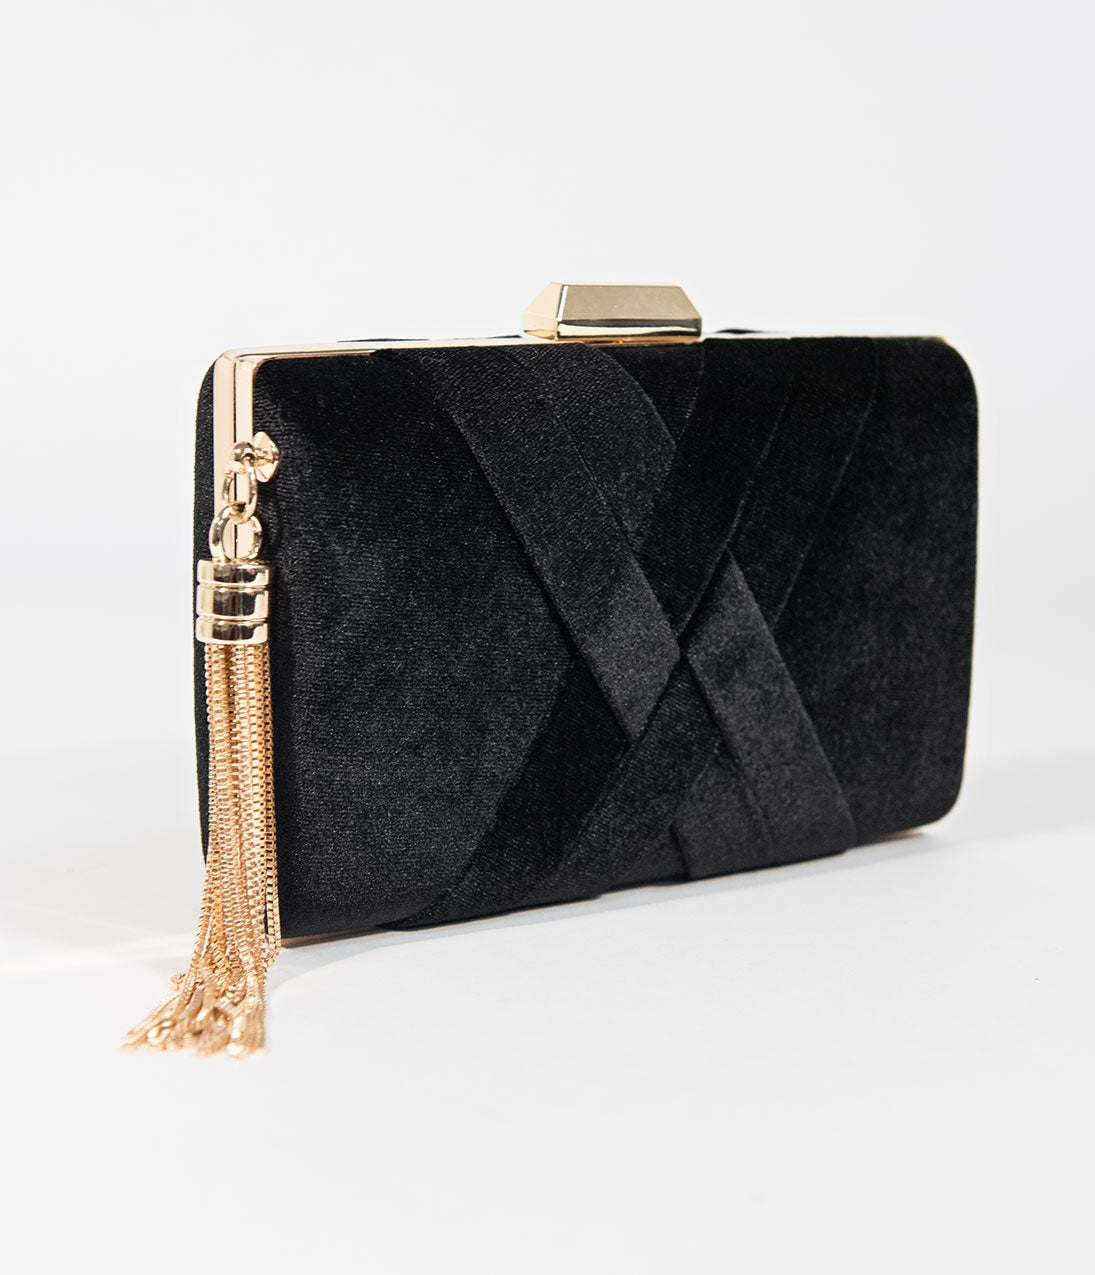 1950s Handbags, Purses, and Evening Bag Styles Vintage Style Black Velvet  Gold Hard Clutch $72.00 AT vintagedancer.com